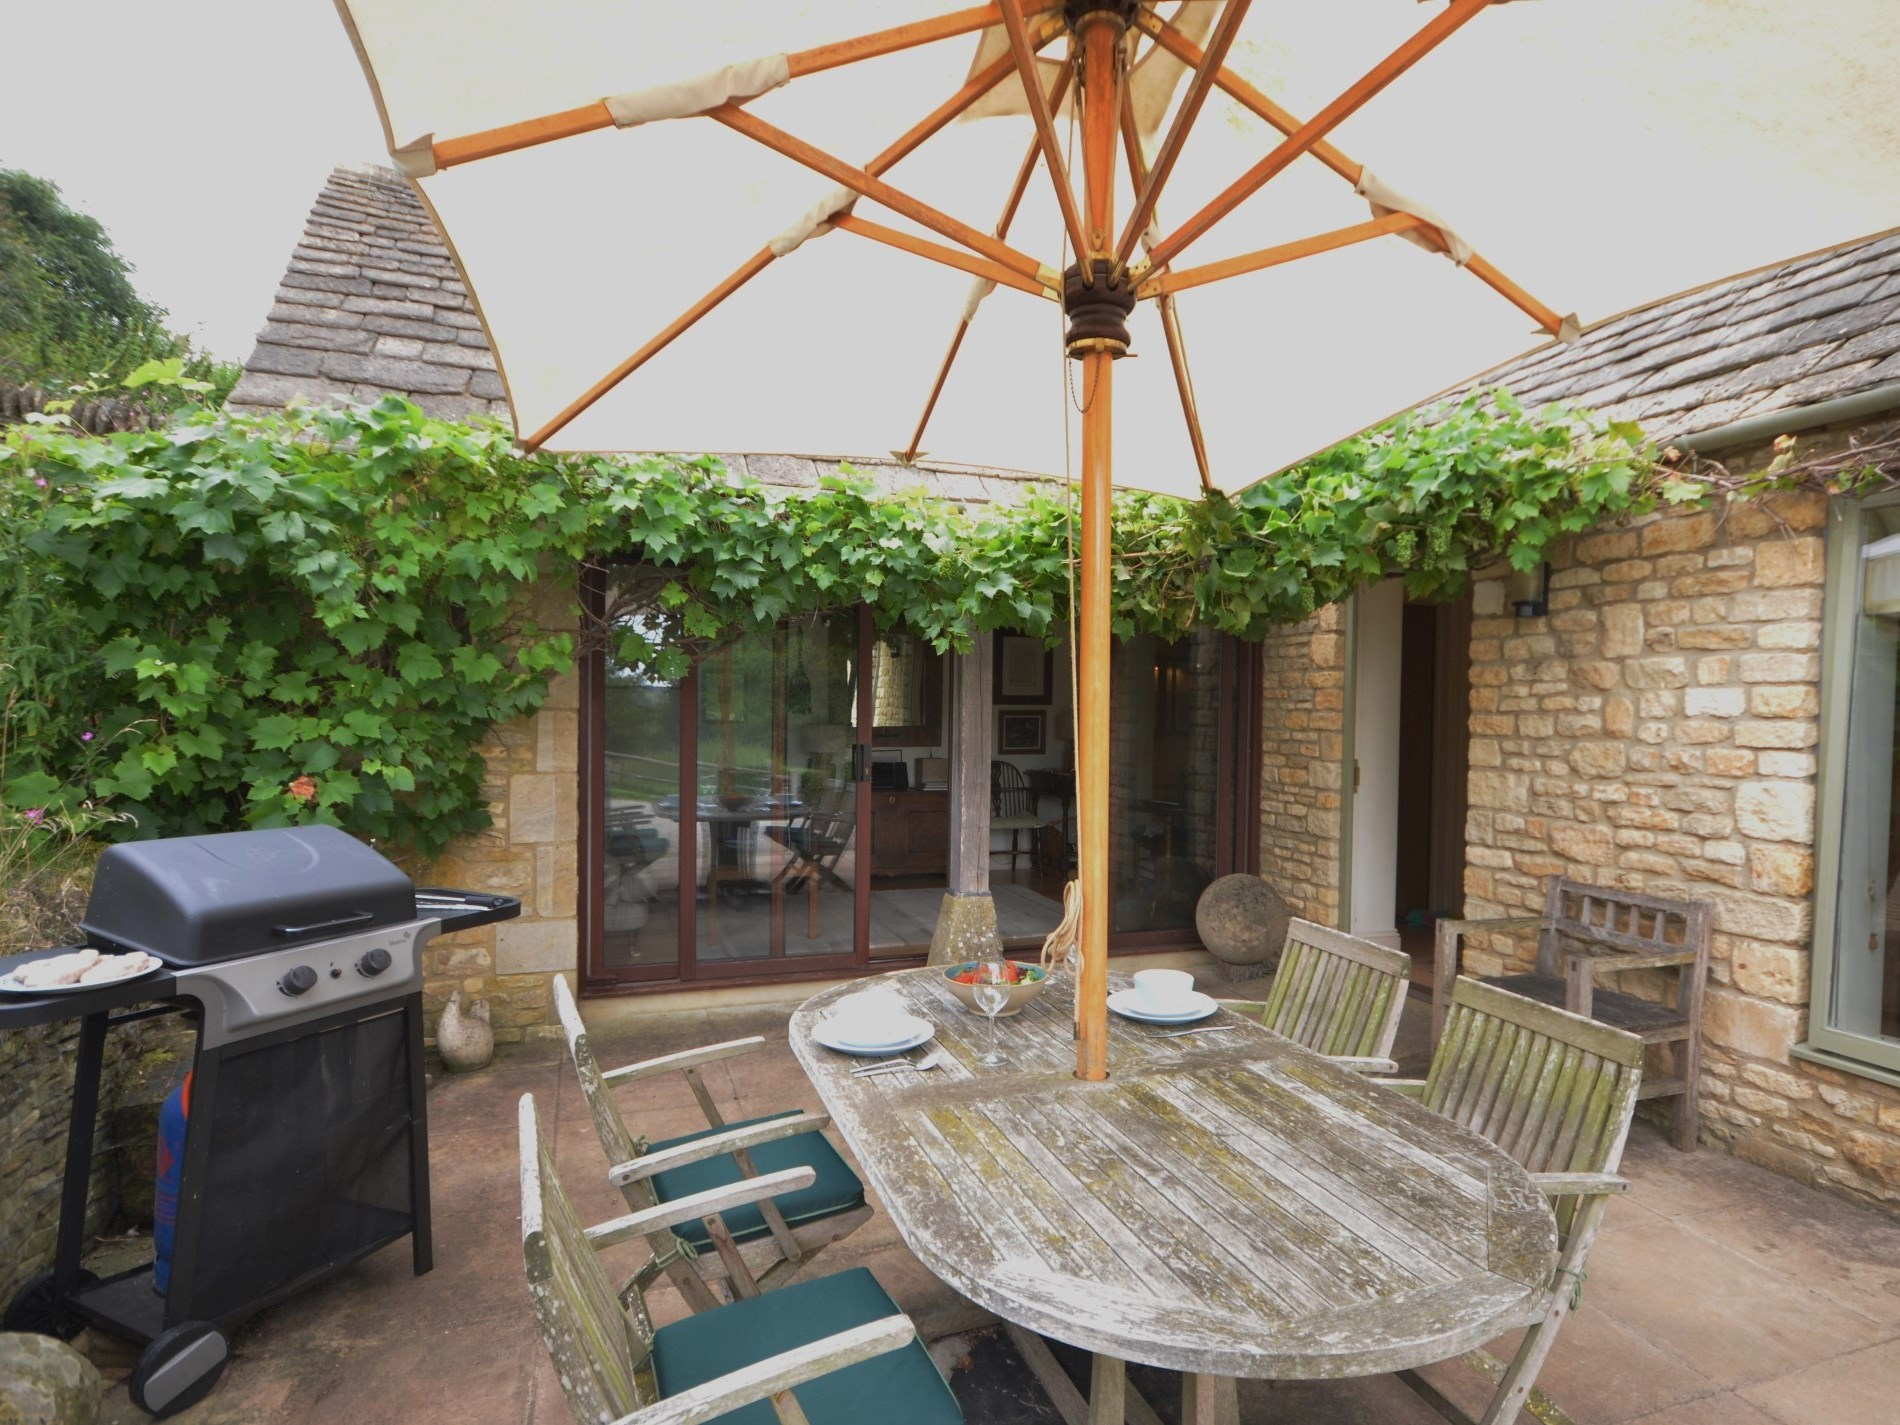 Enjoy a BBQ in this picturesque Cotswold location